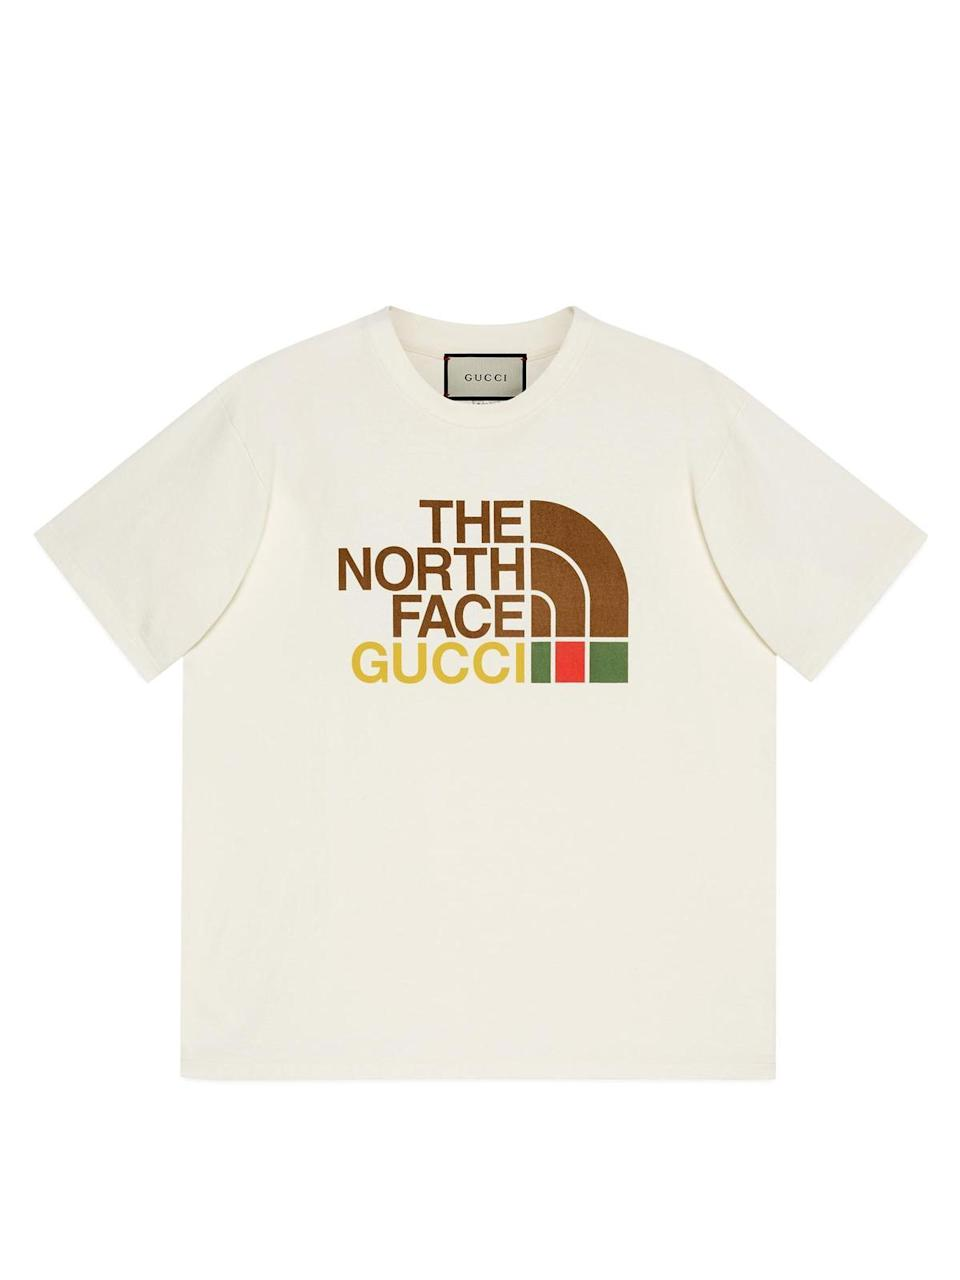 The North Face x Gucci 聯名短版 T-Shirt NT$19,500。(Gucci提供)